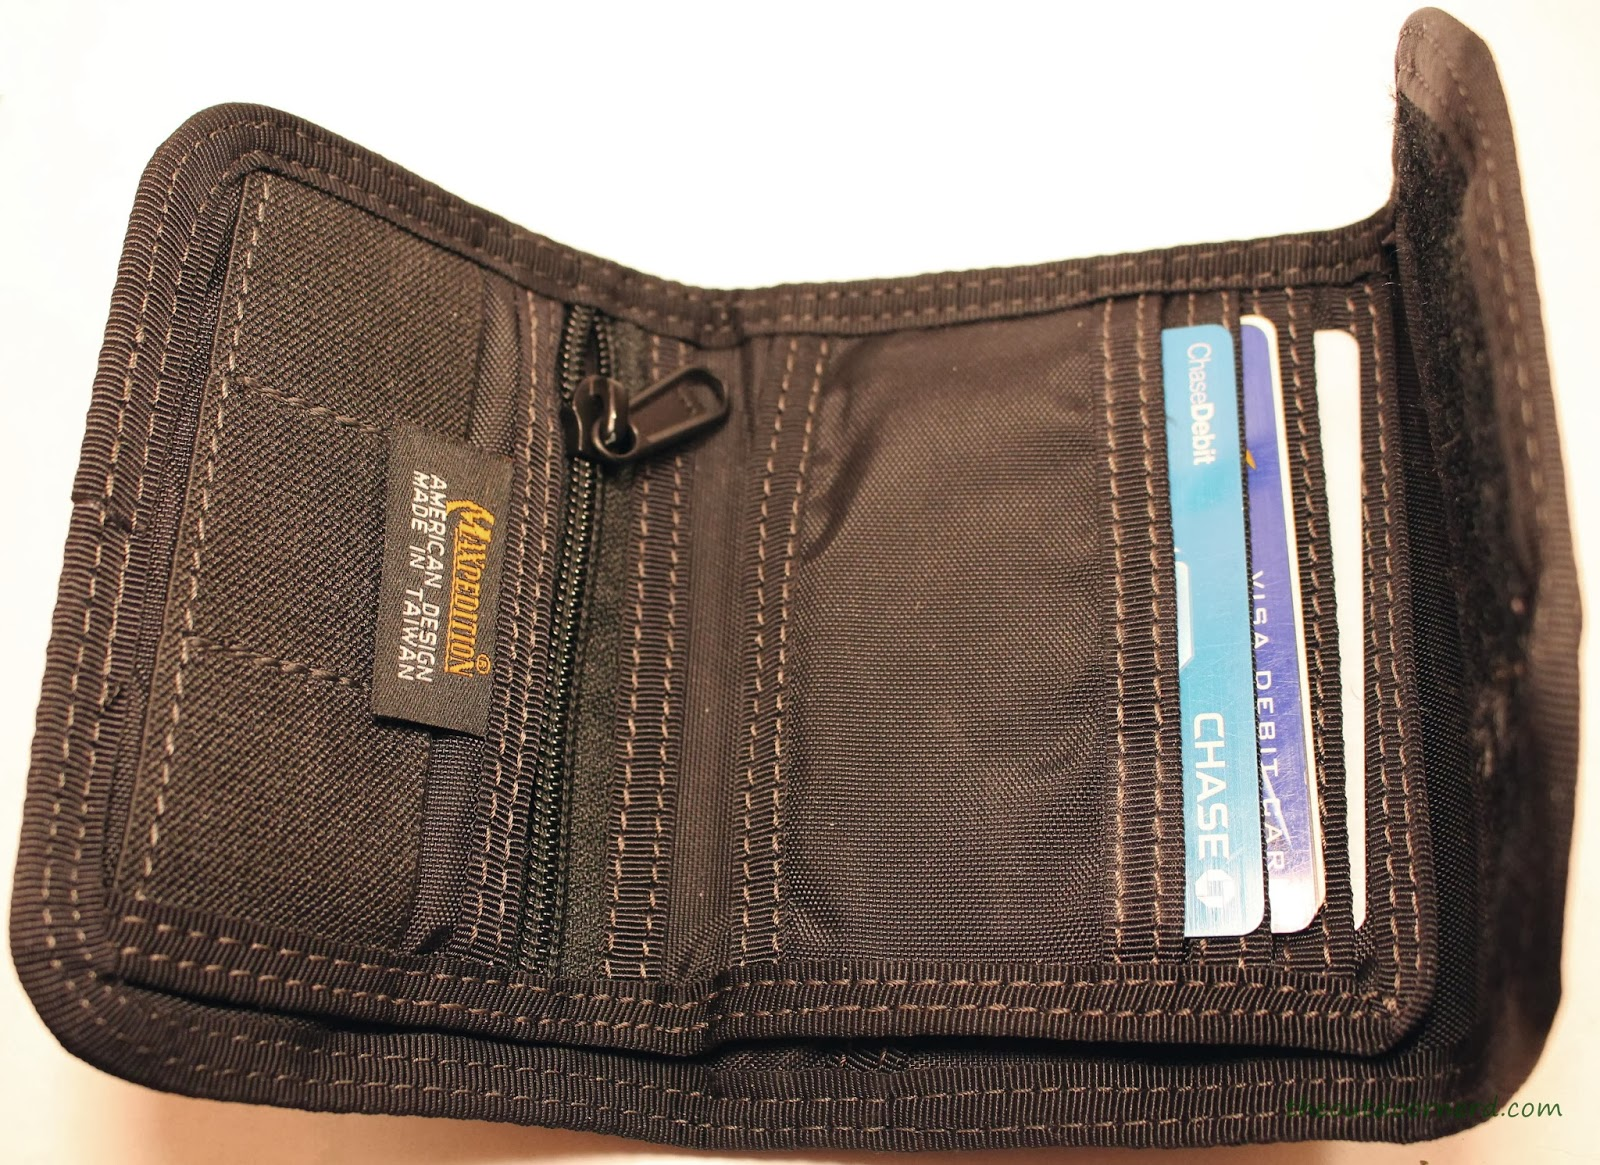 Maxpedition C.M.C Wallet - Closeup Of Card Slots 2